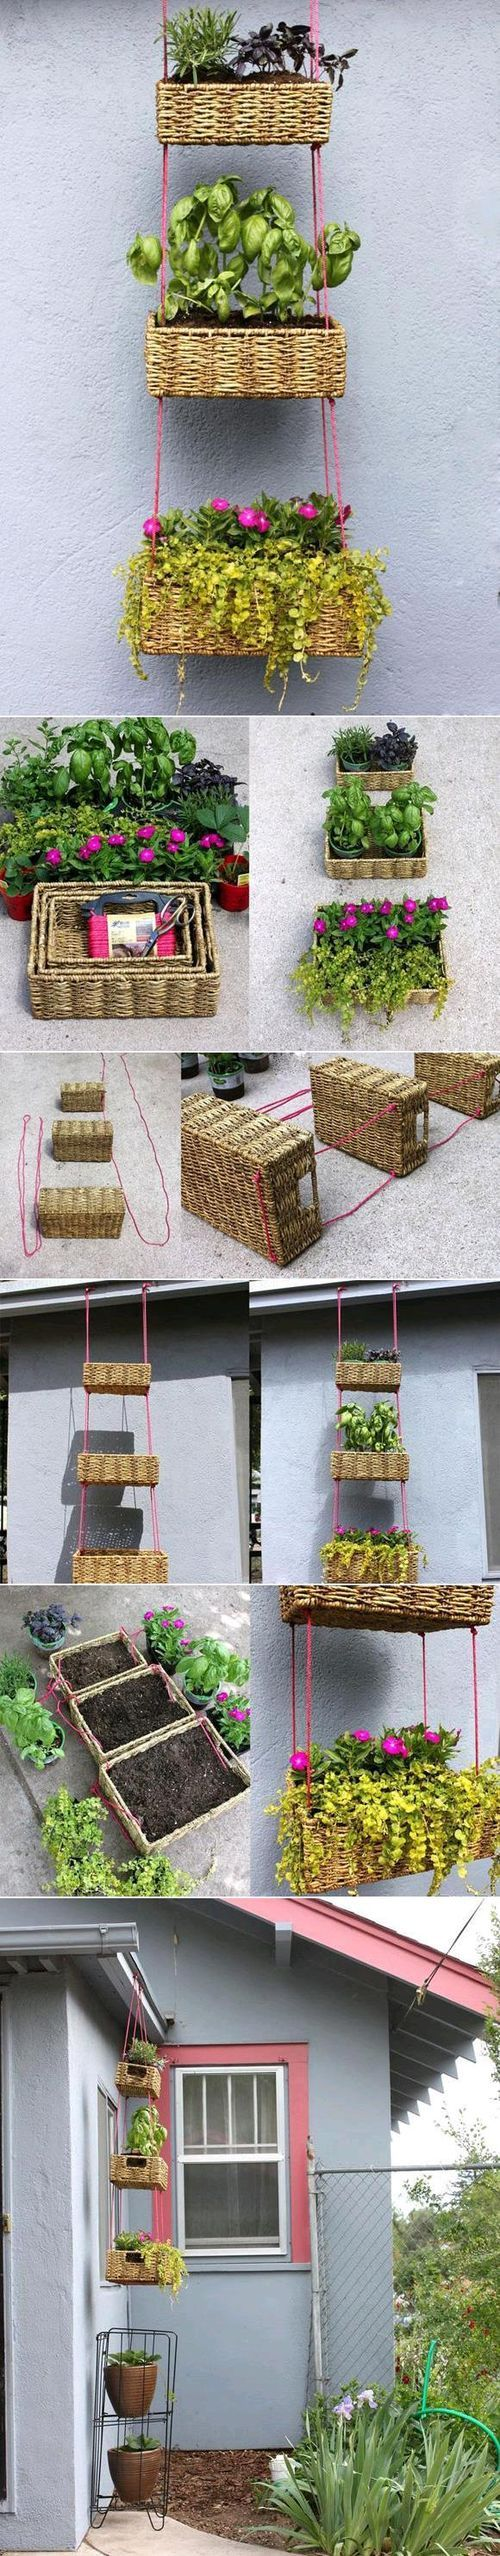 Hanging Basket Maybe A Smaller Version For Fruit In The Kitchen Diy Pinterest Hanging